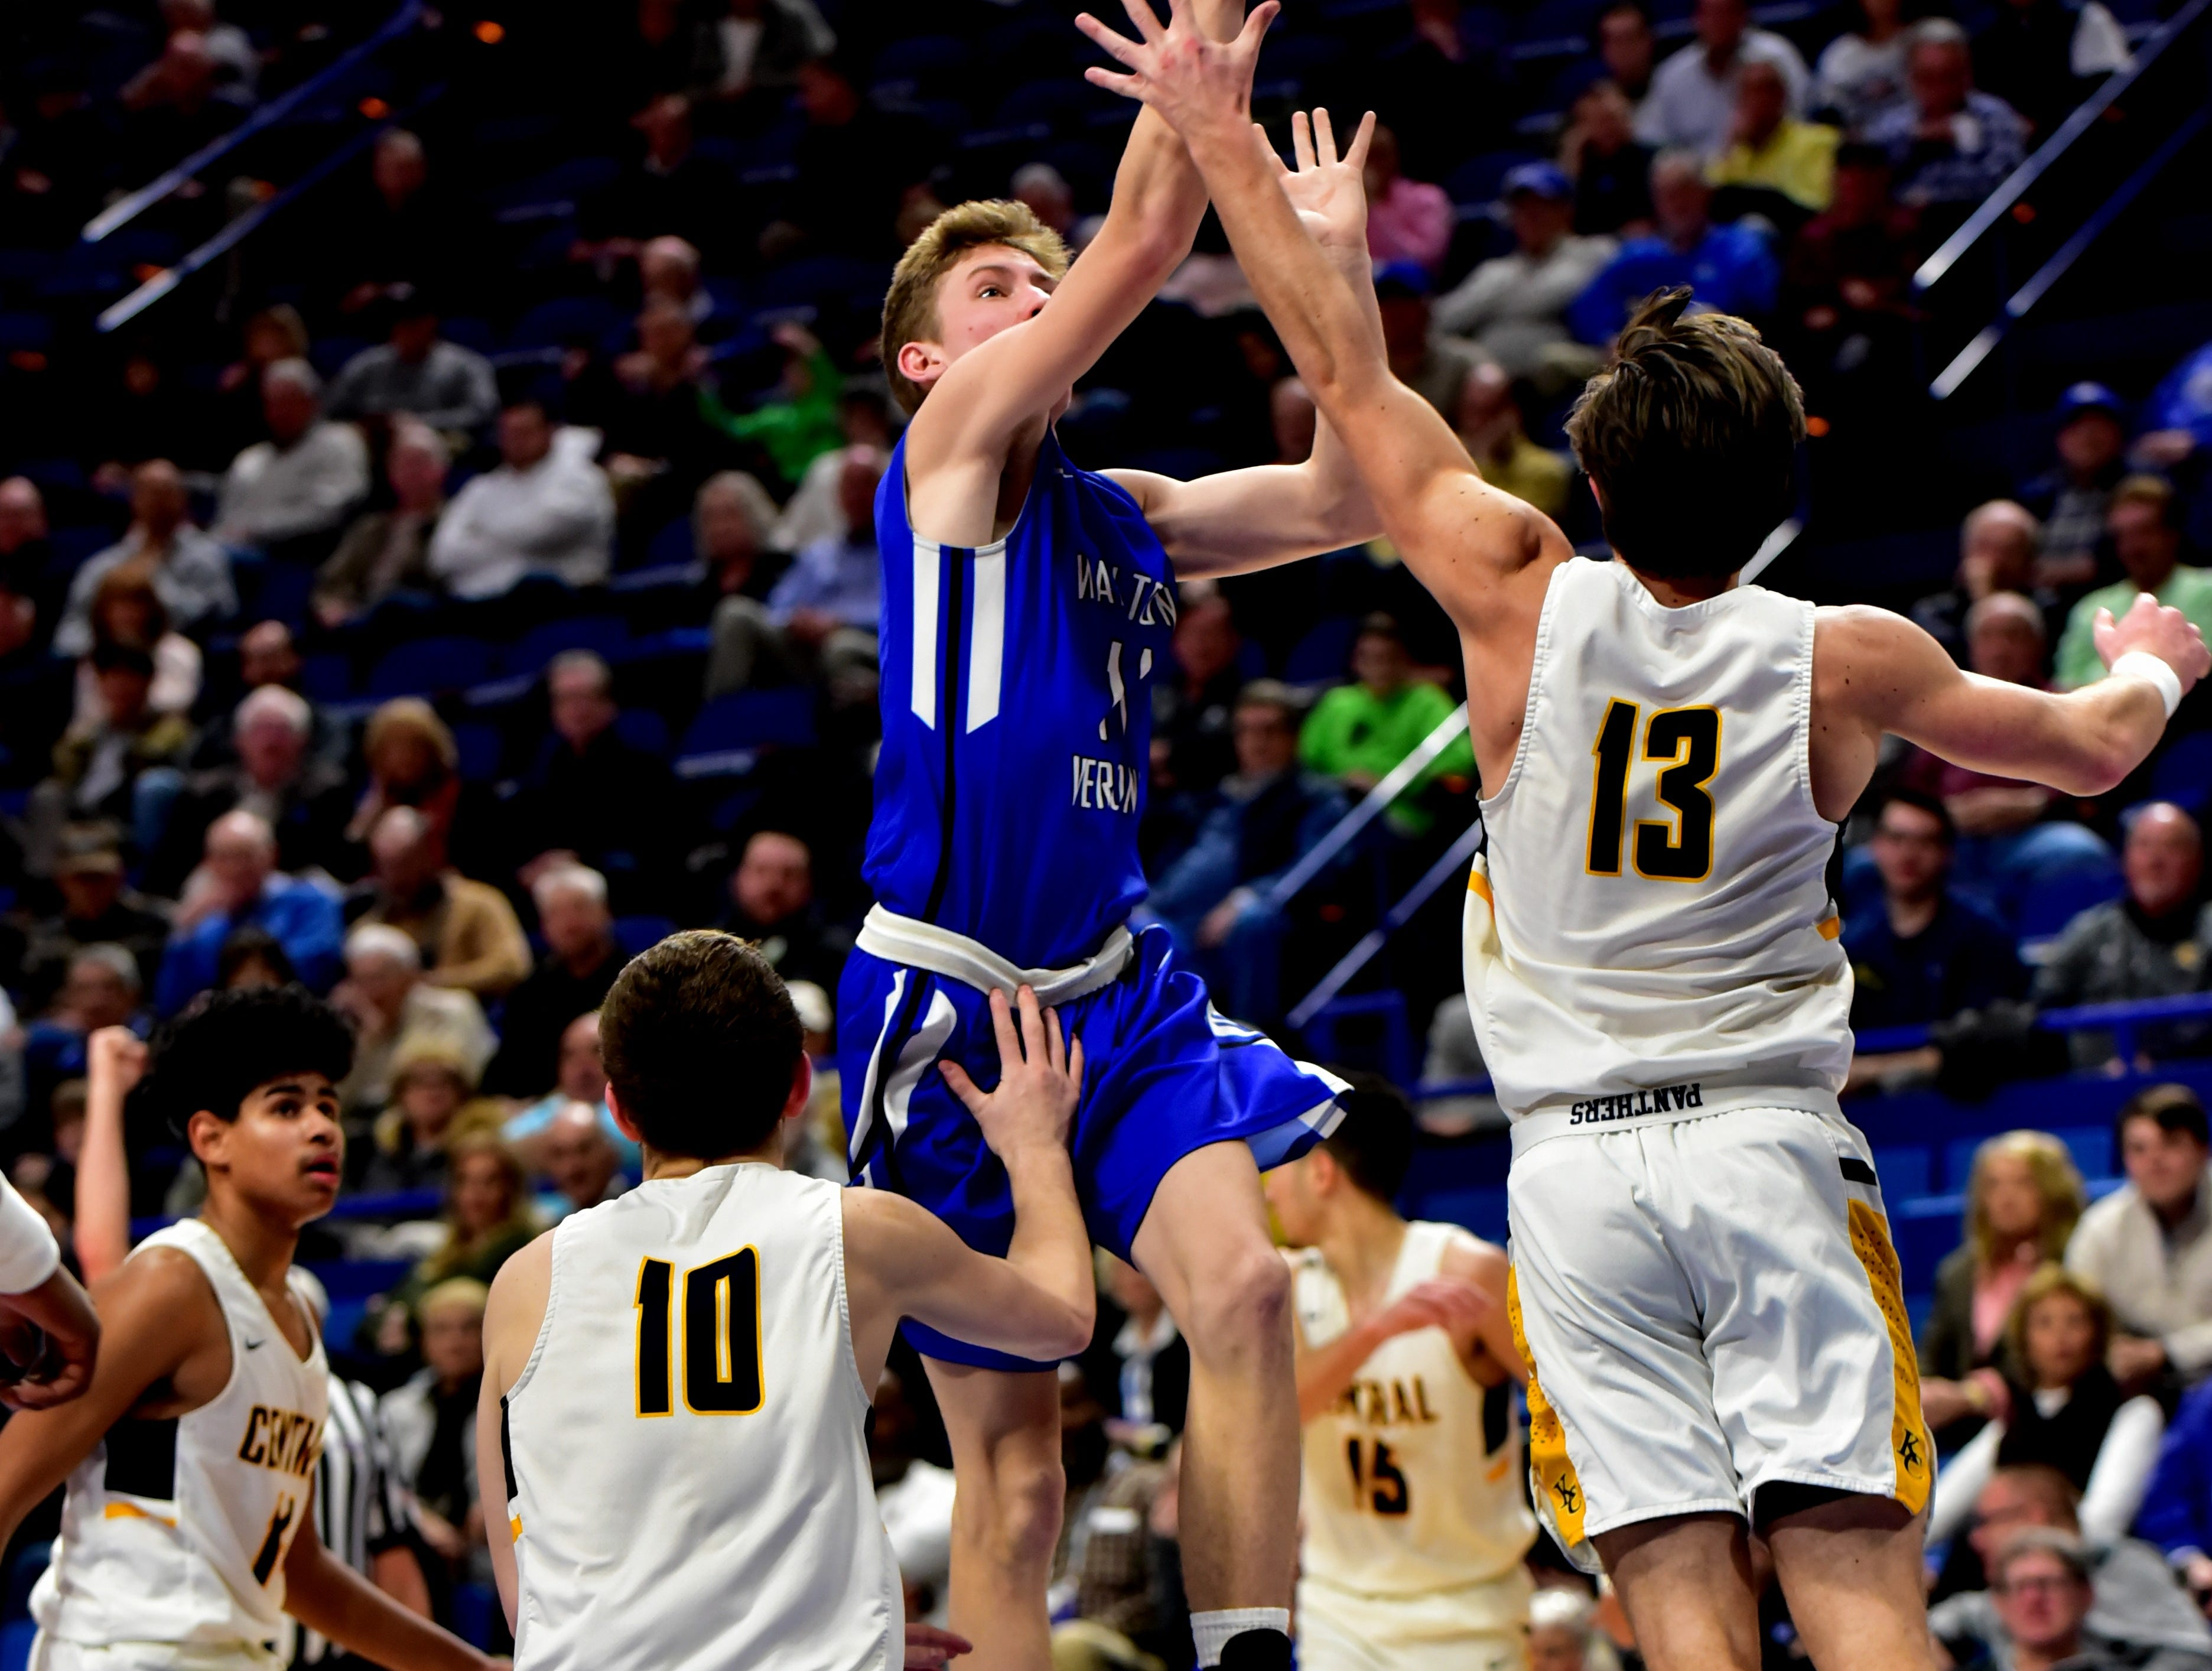 Trey Bonne (11) of Walton Verona drives the lane and scores with a layup for the Bearcats as they top Knox Central in round one at the KHSAA Sweet 16 Tournament at Rupp Arena in Lexington, KY, March 6, 2019